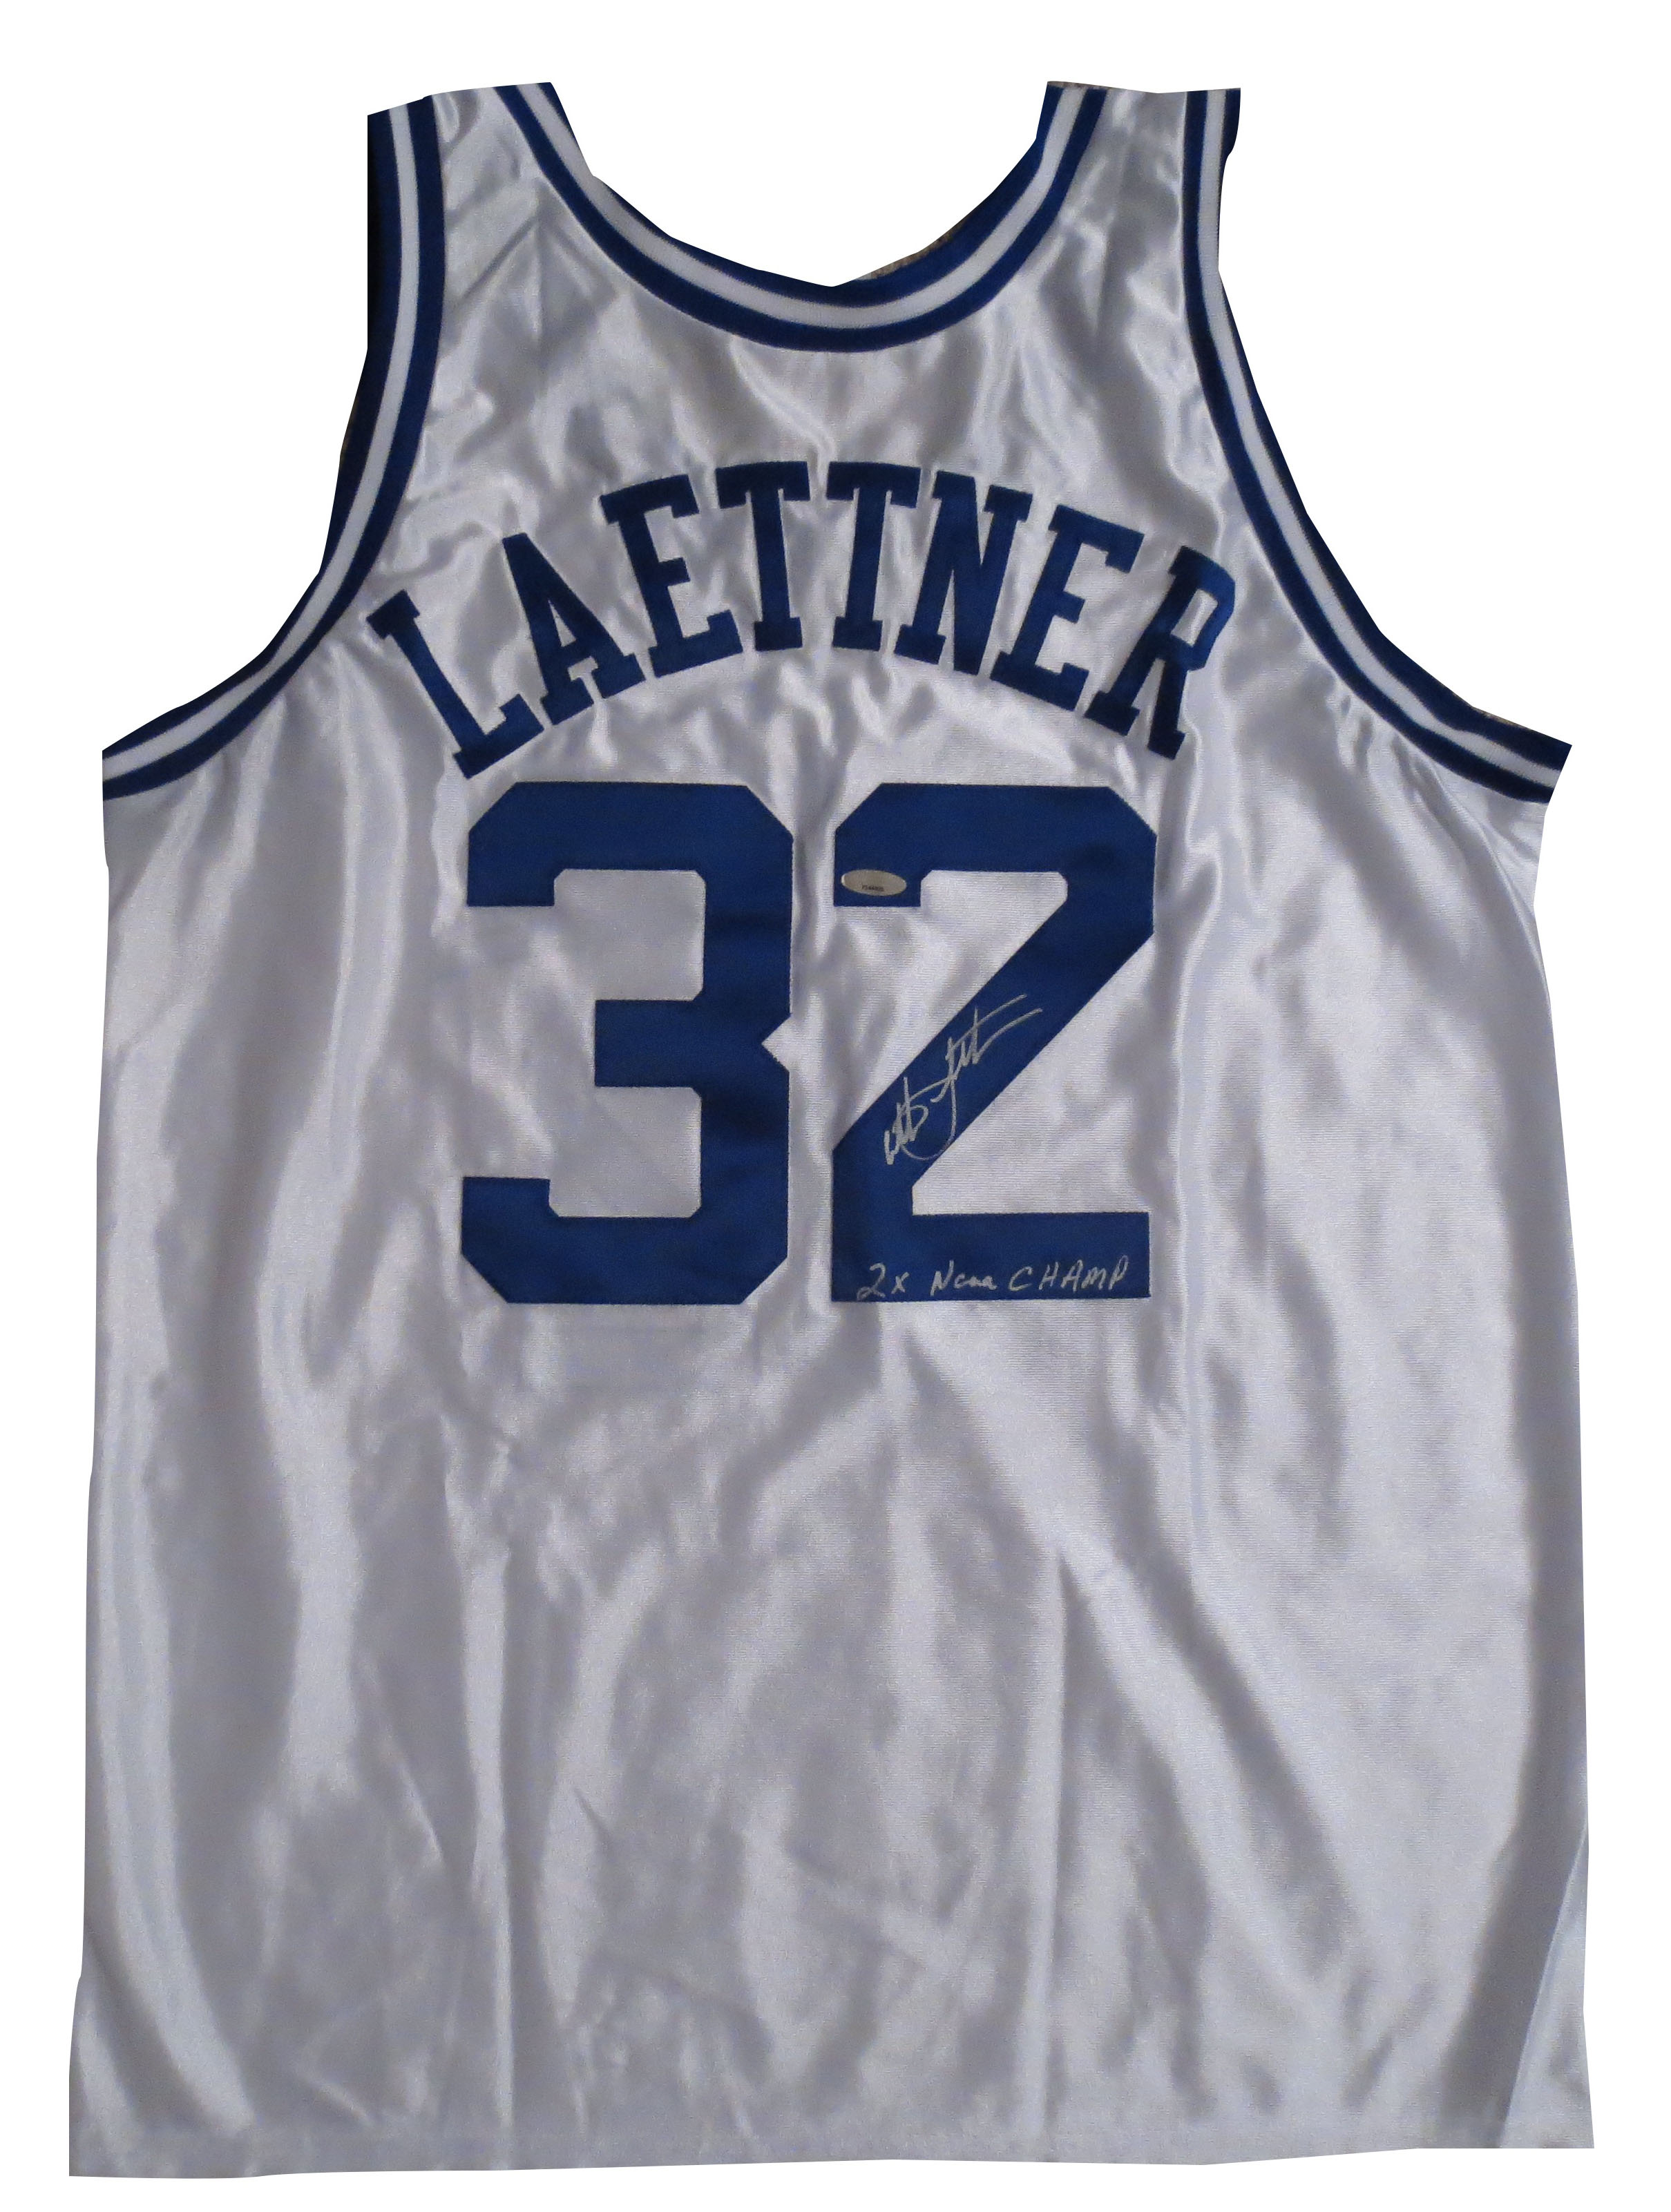 Christian Laettner Signed Duke Jersey from Powers Autographs